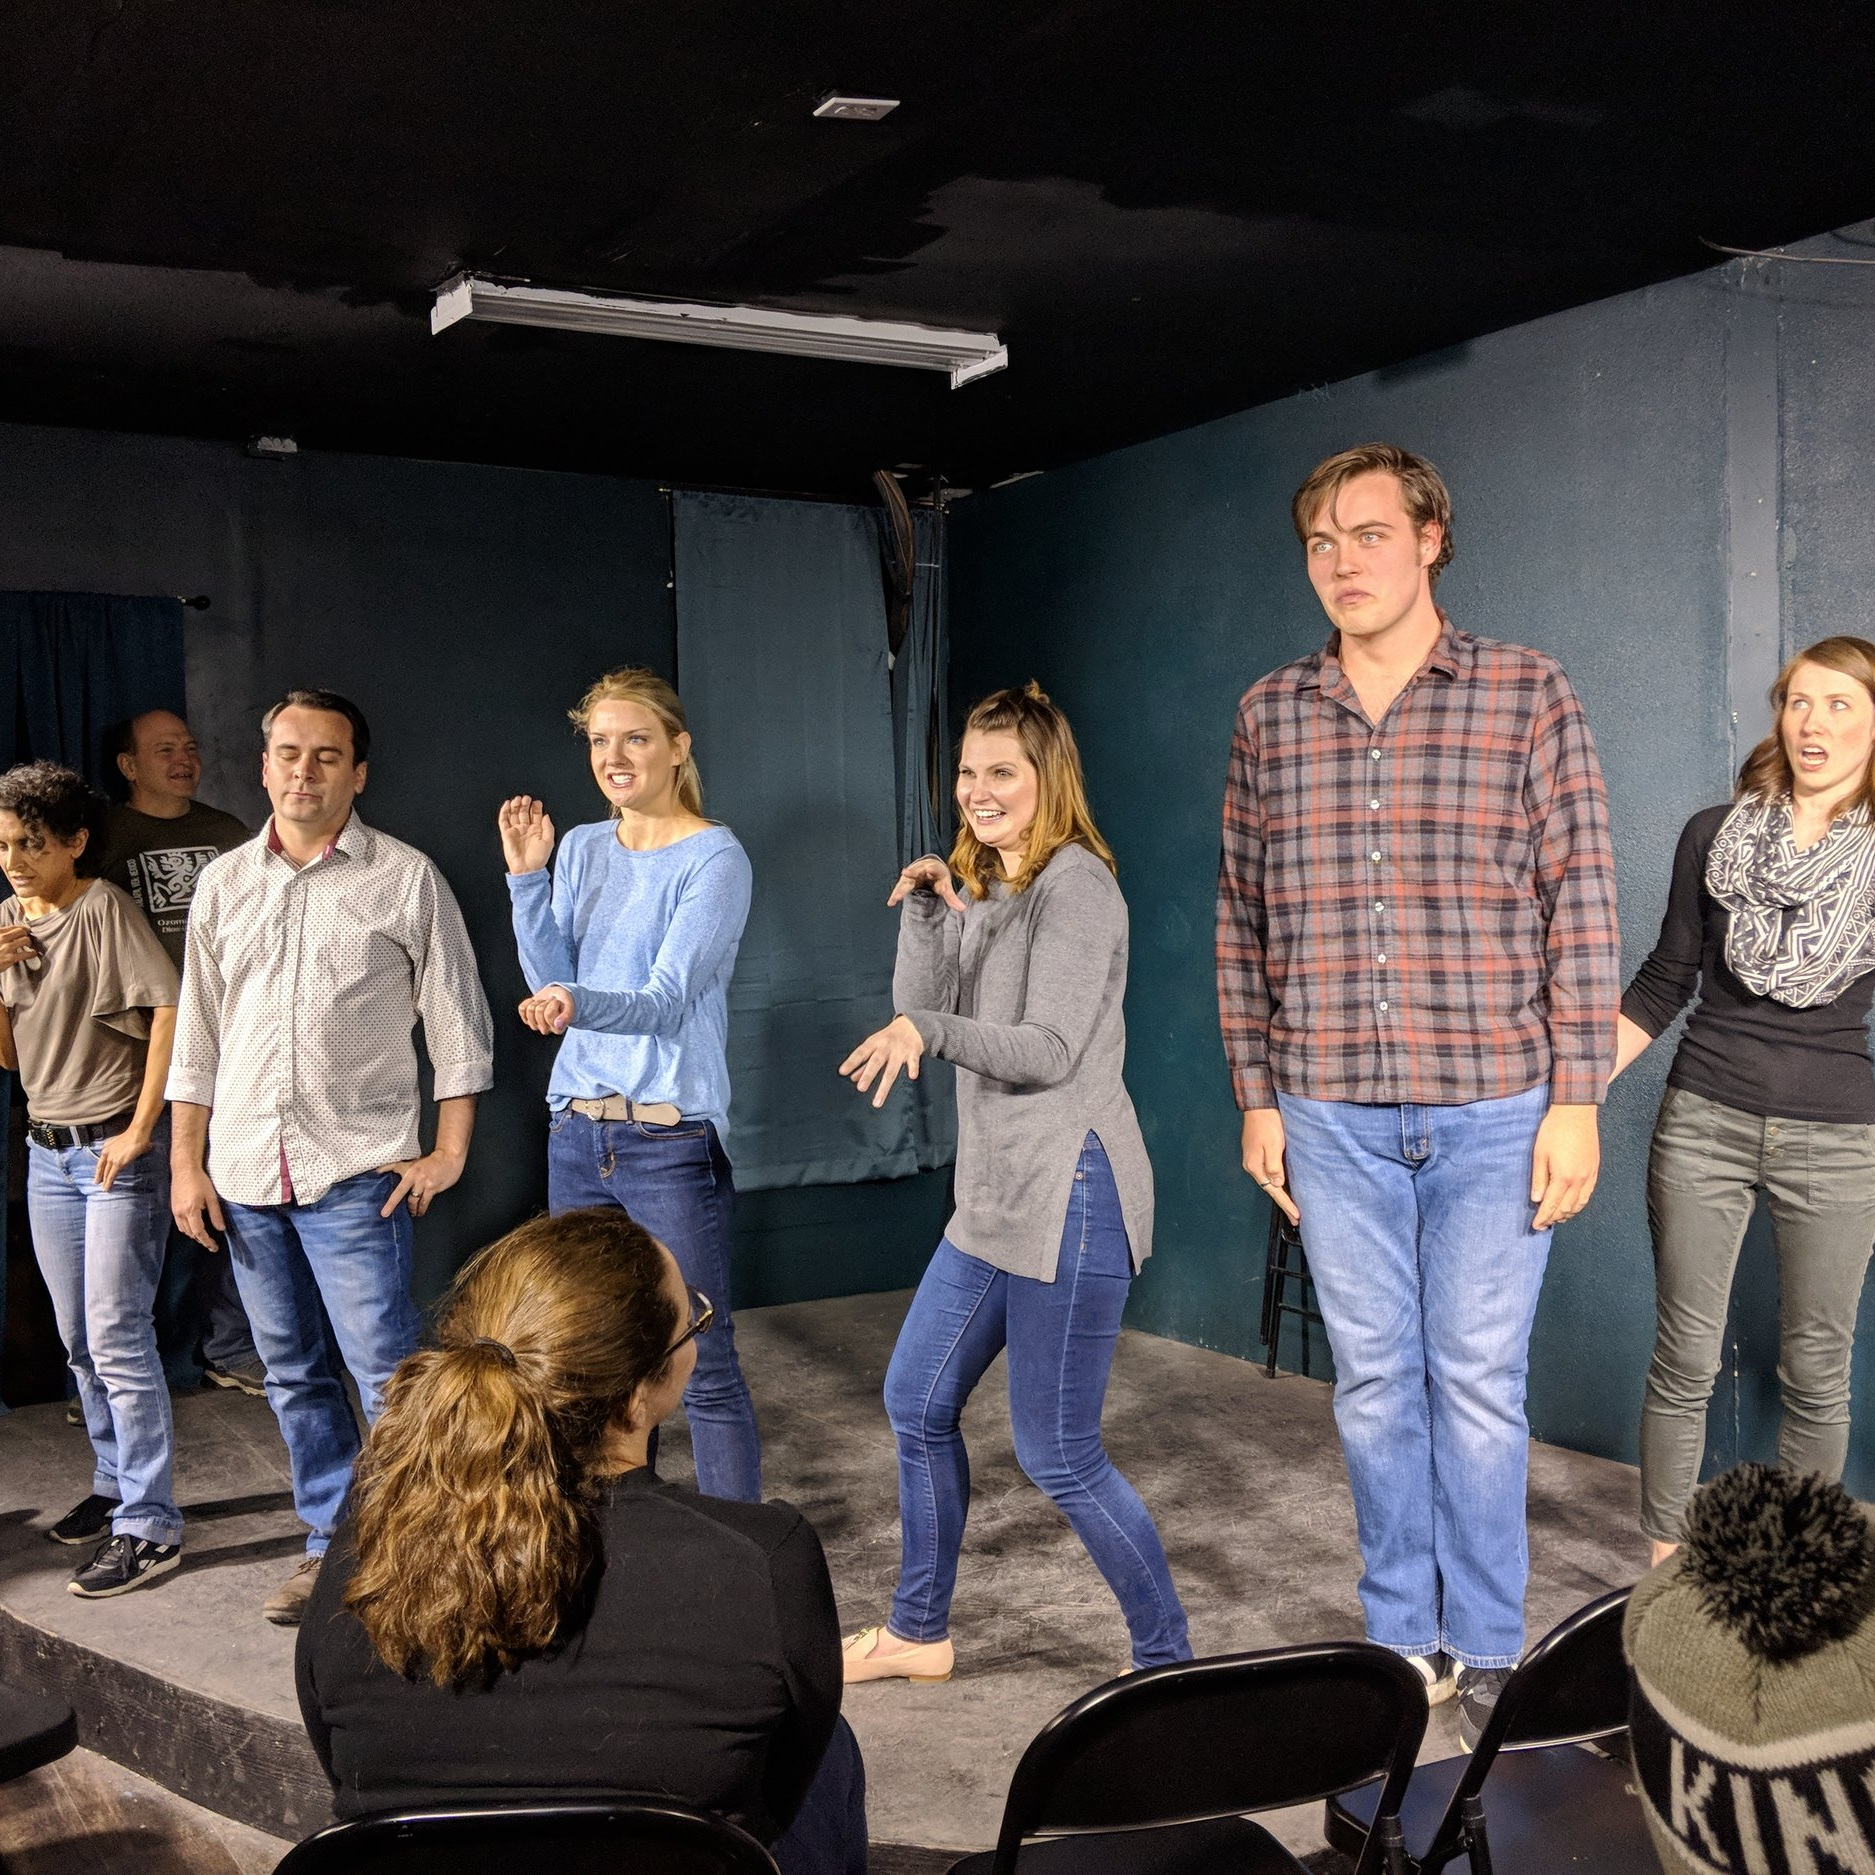 Tantrum   coached by Chris Teregis   You'll throw one yourself at how hilarious this crew is. Tantrum performs a Harold each set, boasting fabulous group games and support like you've never seen. Don't miss Tantrum Wednesdays at SYP Awesome Improv Show!